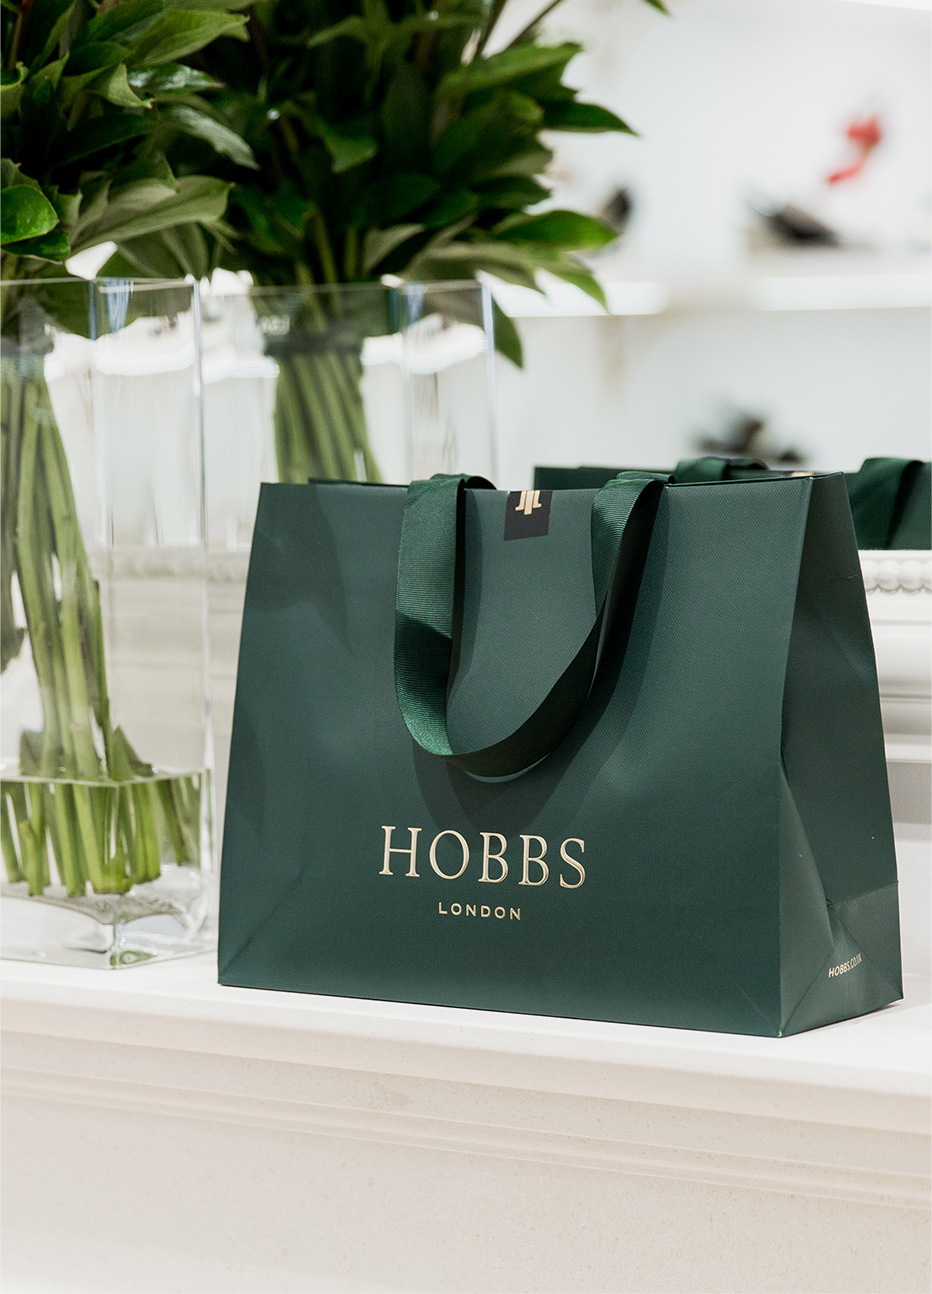 The Hobbs flasgship store in Covent Garden, London.